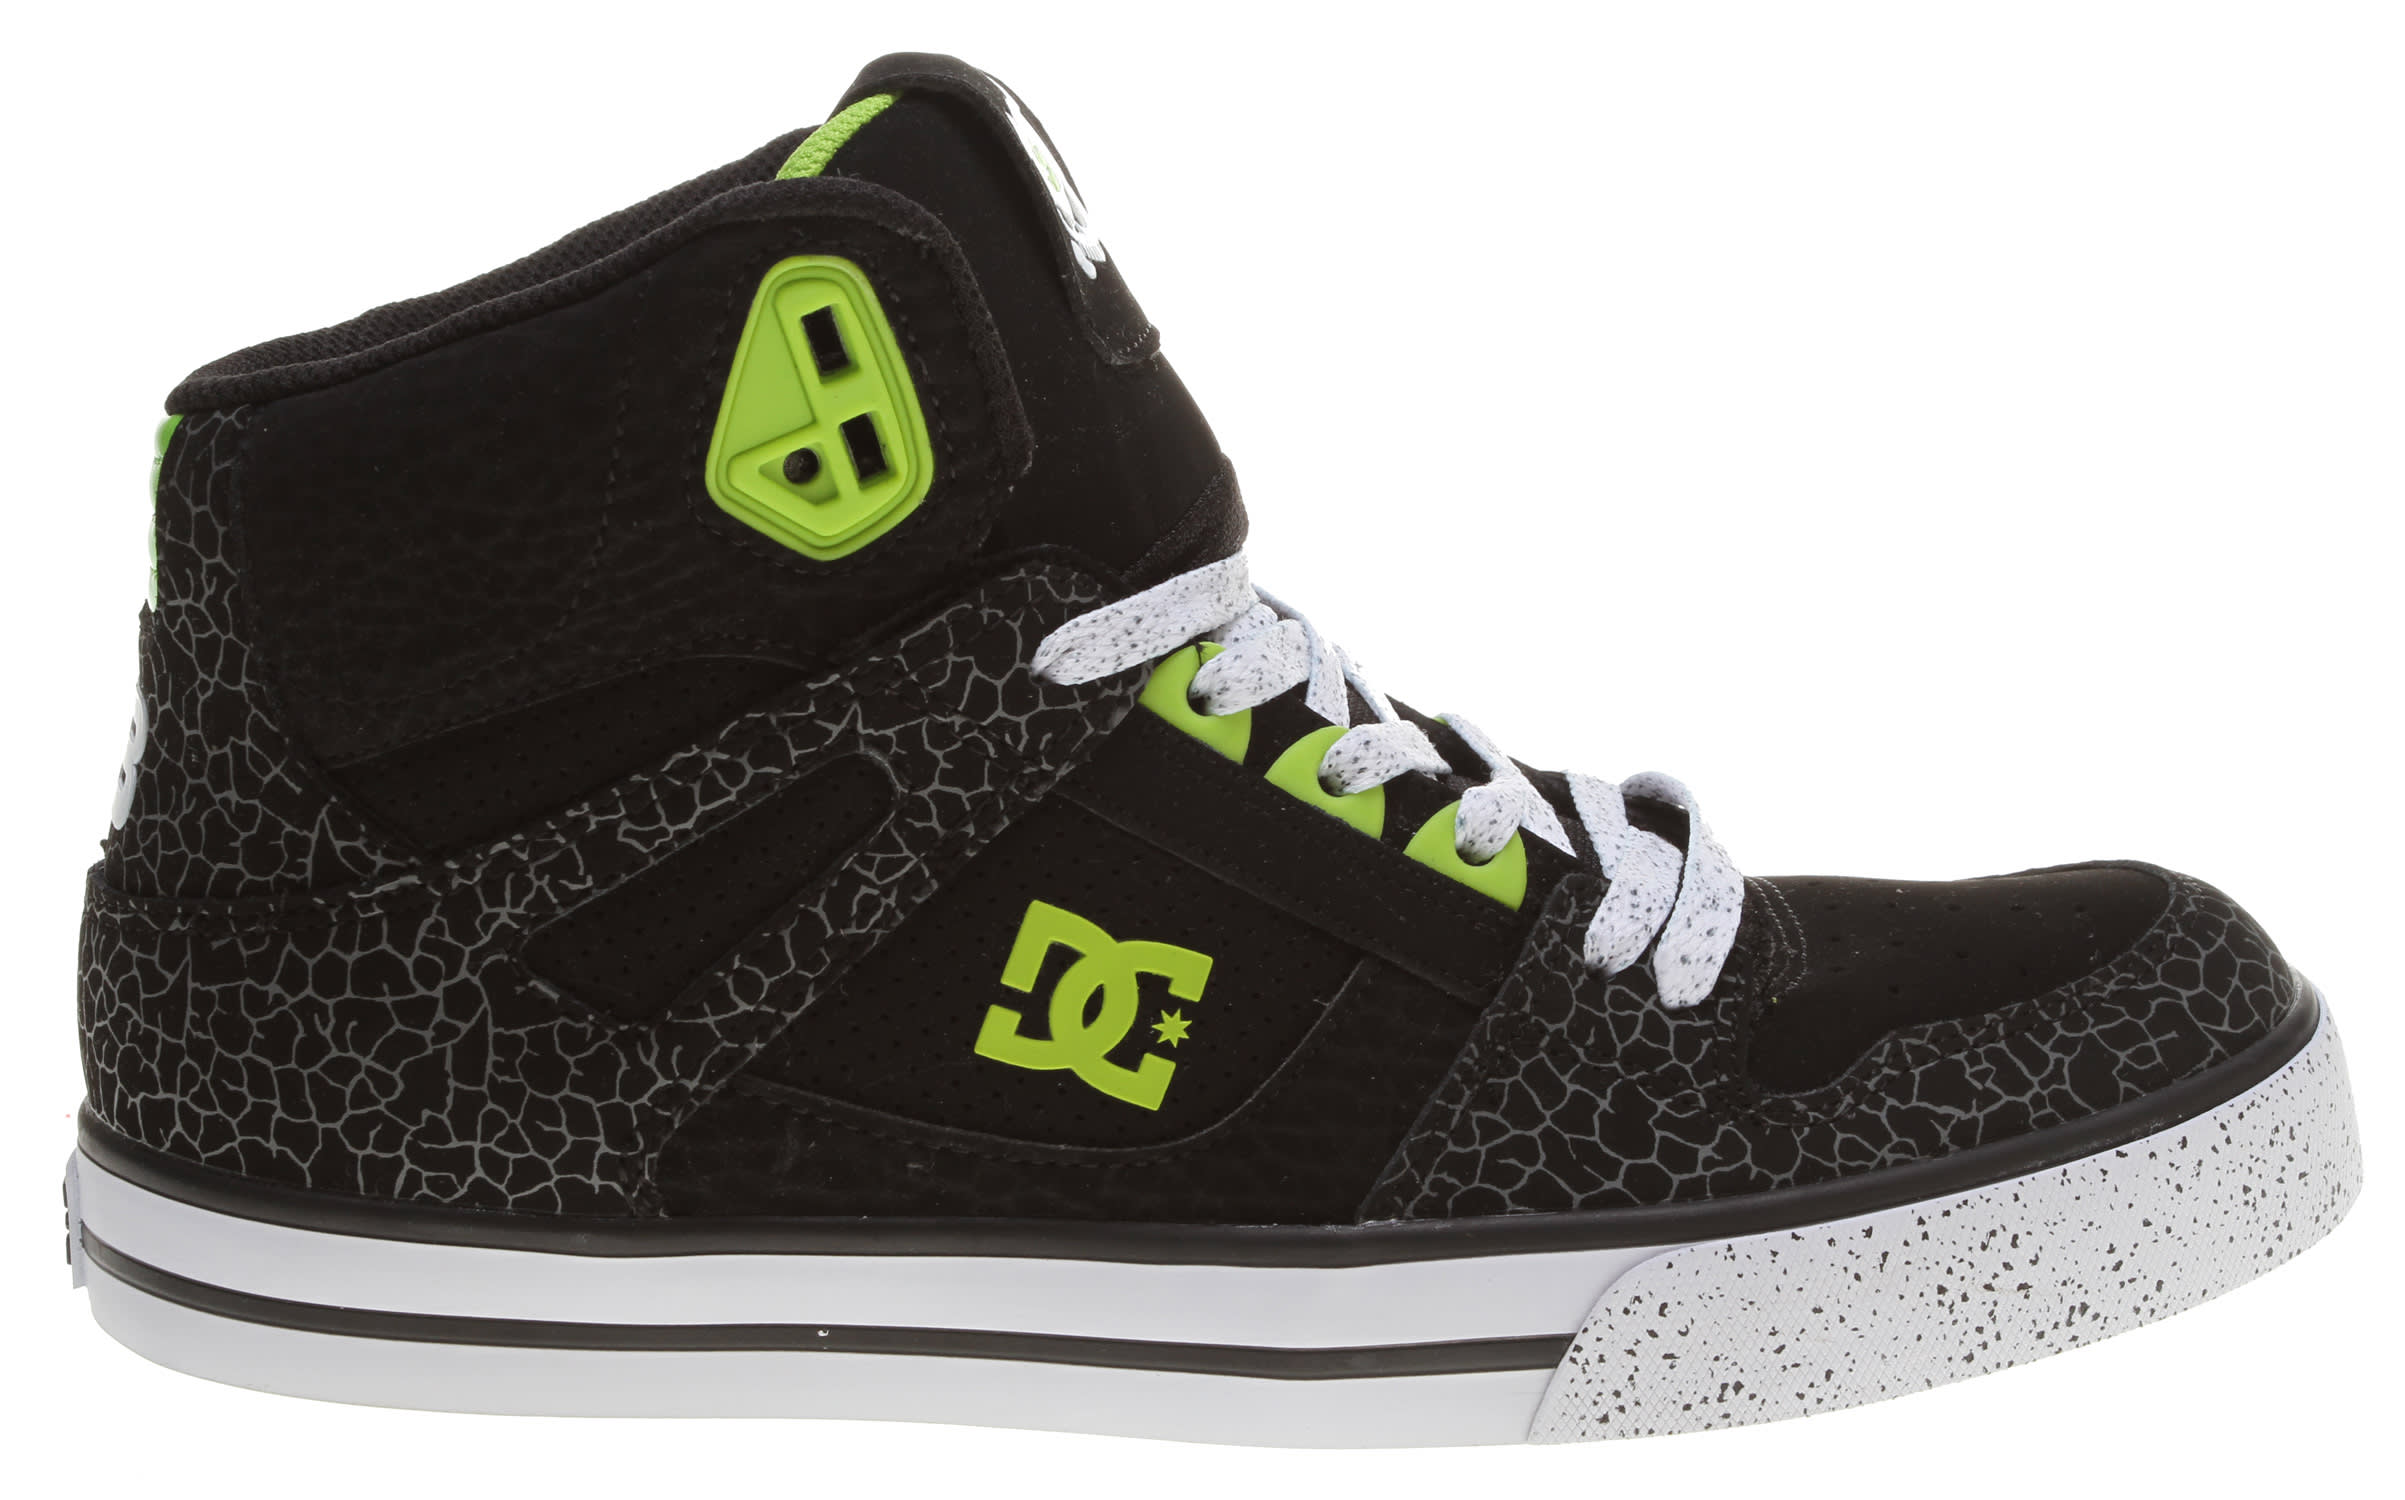 dc ken block spartan hi skate shoes. Black Bedroom Furniture Sets. Home Design Ideas